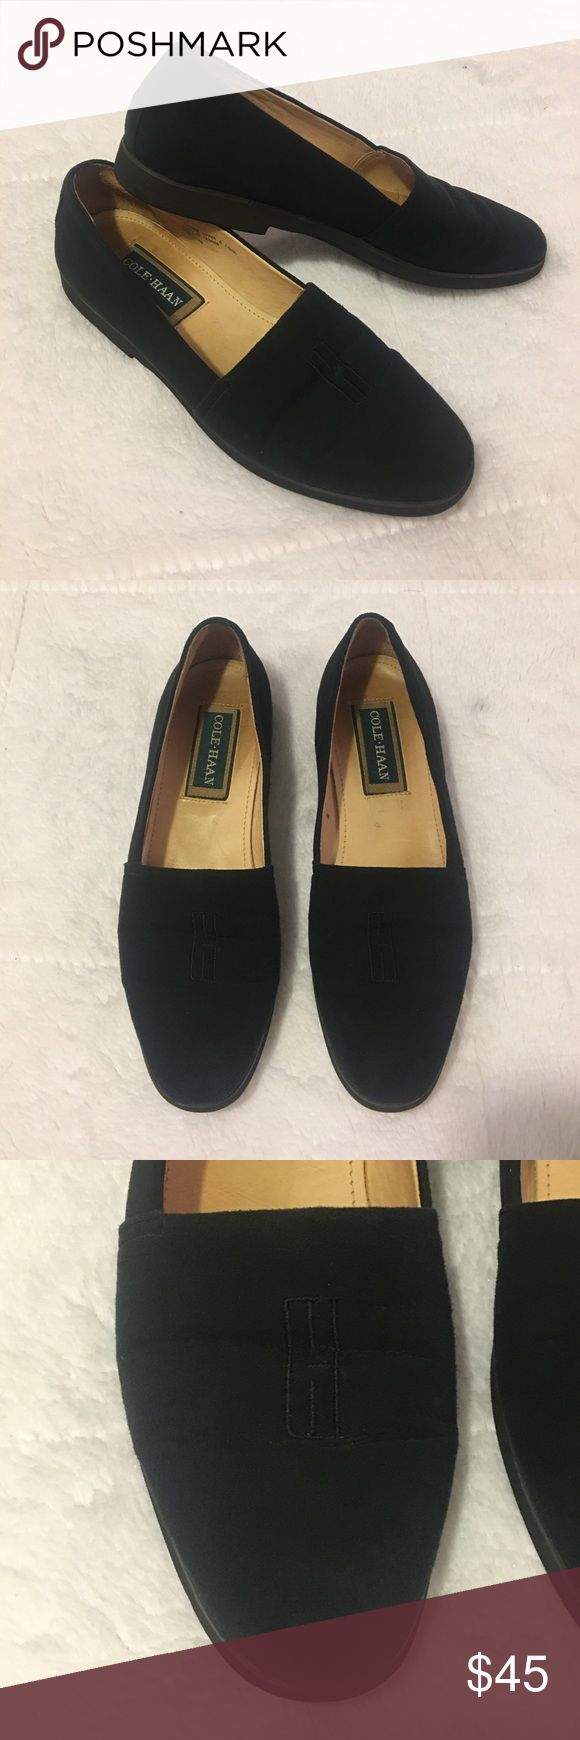 Cole Haan Slip On Flats Women's Loafers Size 7N Cole Haan Black Slip On Flats. Women's Loafers Size 7N. Lightly Worn With A Few Spots And Creasing. Over All Great Pre Owned Condition. Cole Haan Shoes